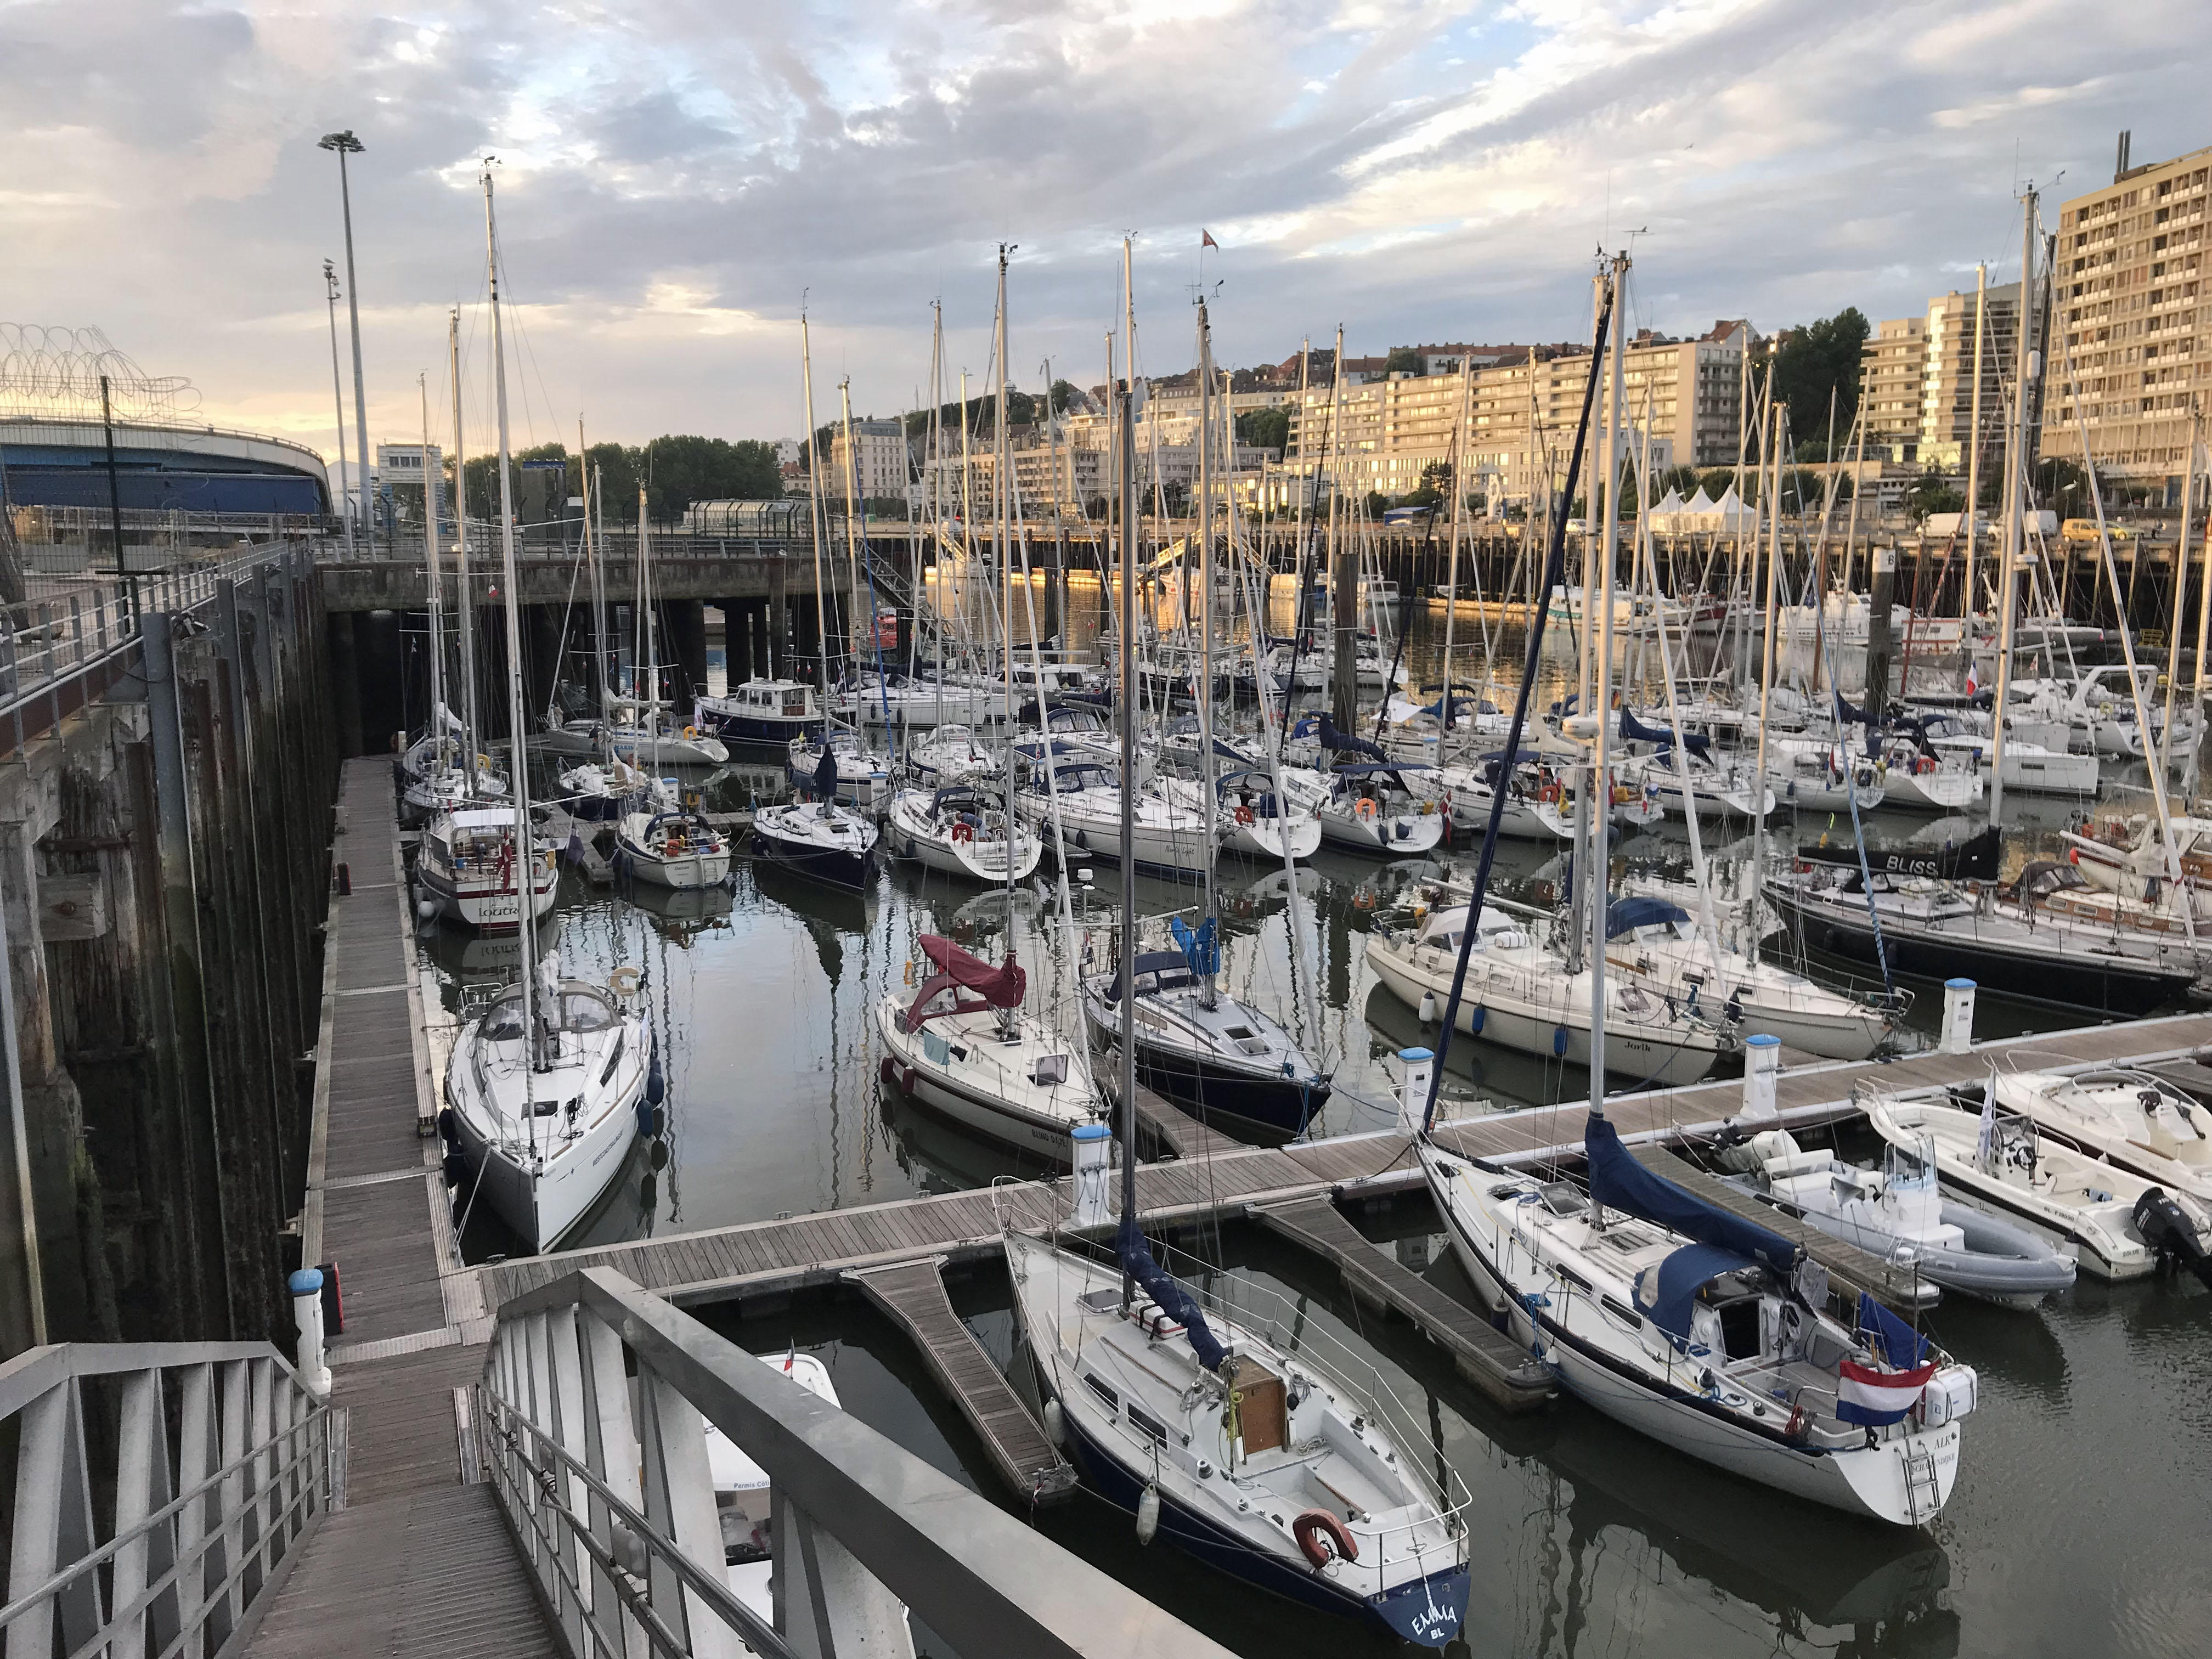 Boulogne sur meer Marina